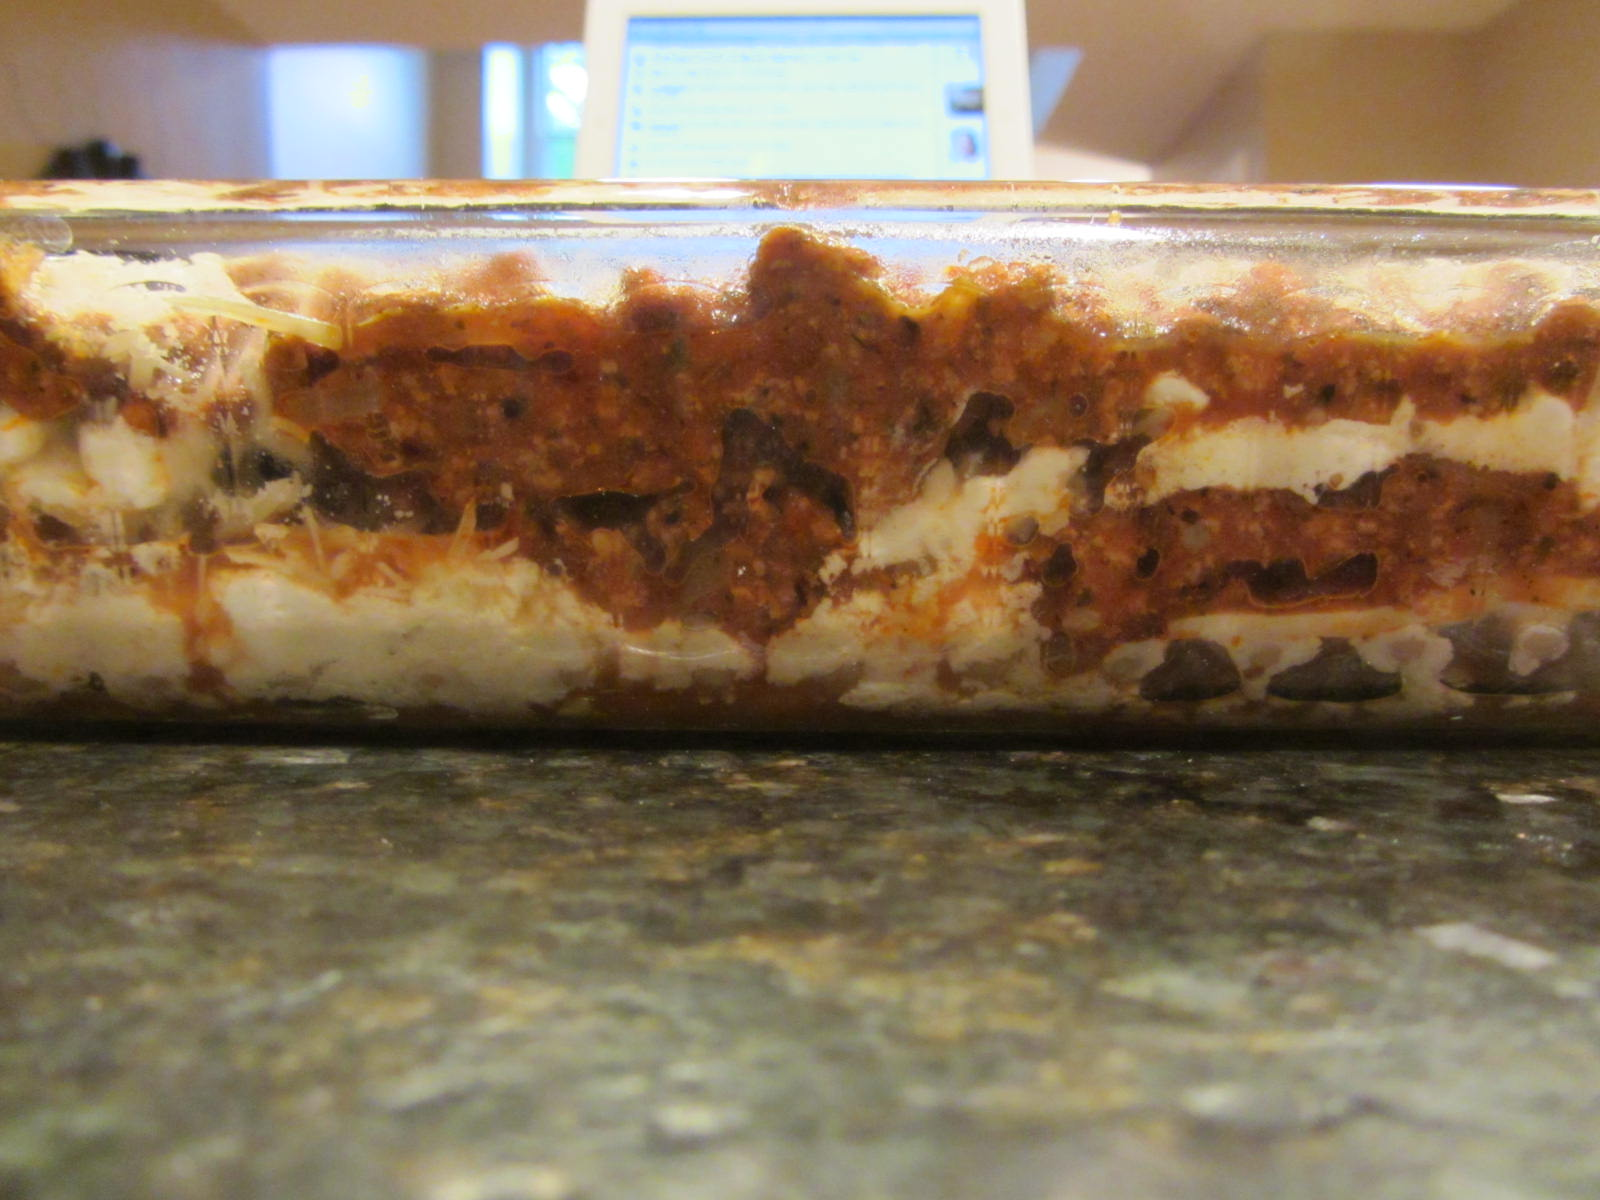 Real Food Recipe: Homemade Lasagna with Meat Sauce